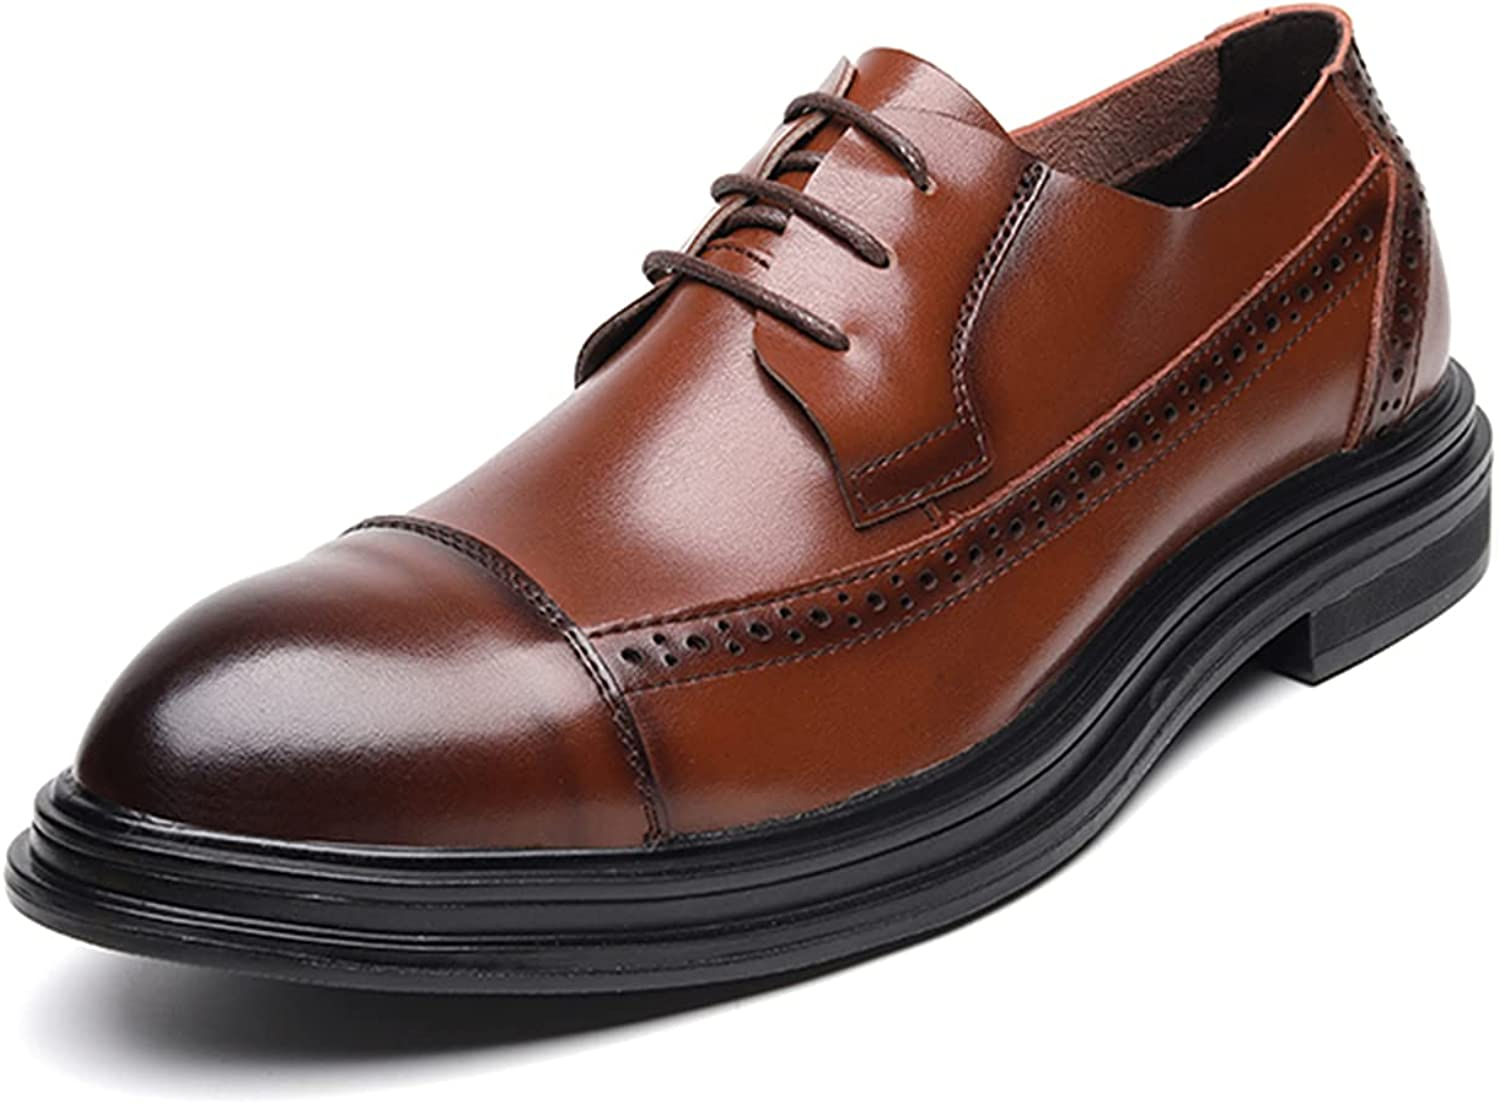 Men's Oxford Dress Shoes Straight Tip Leather Shoes Lace-up Shoes Commuting Breathable Business Shoes